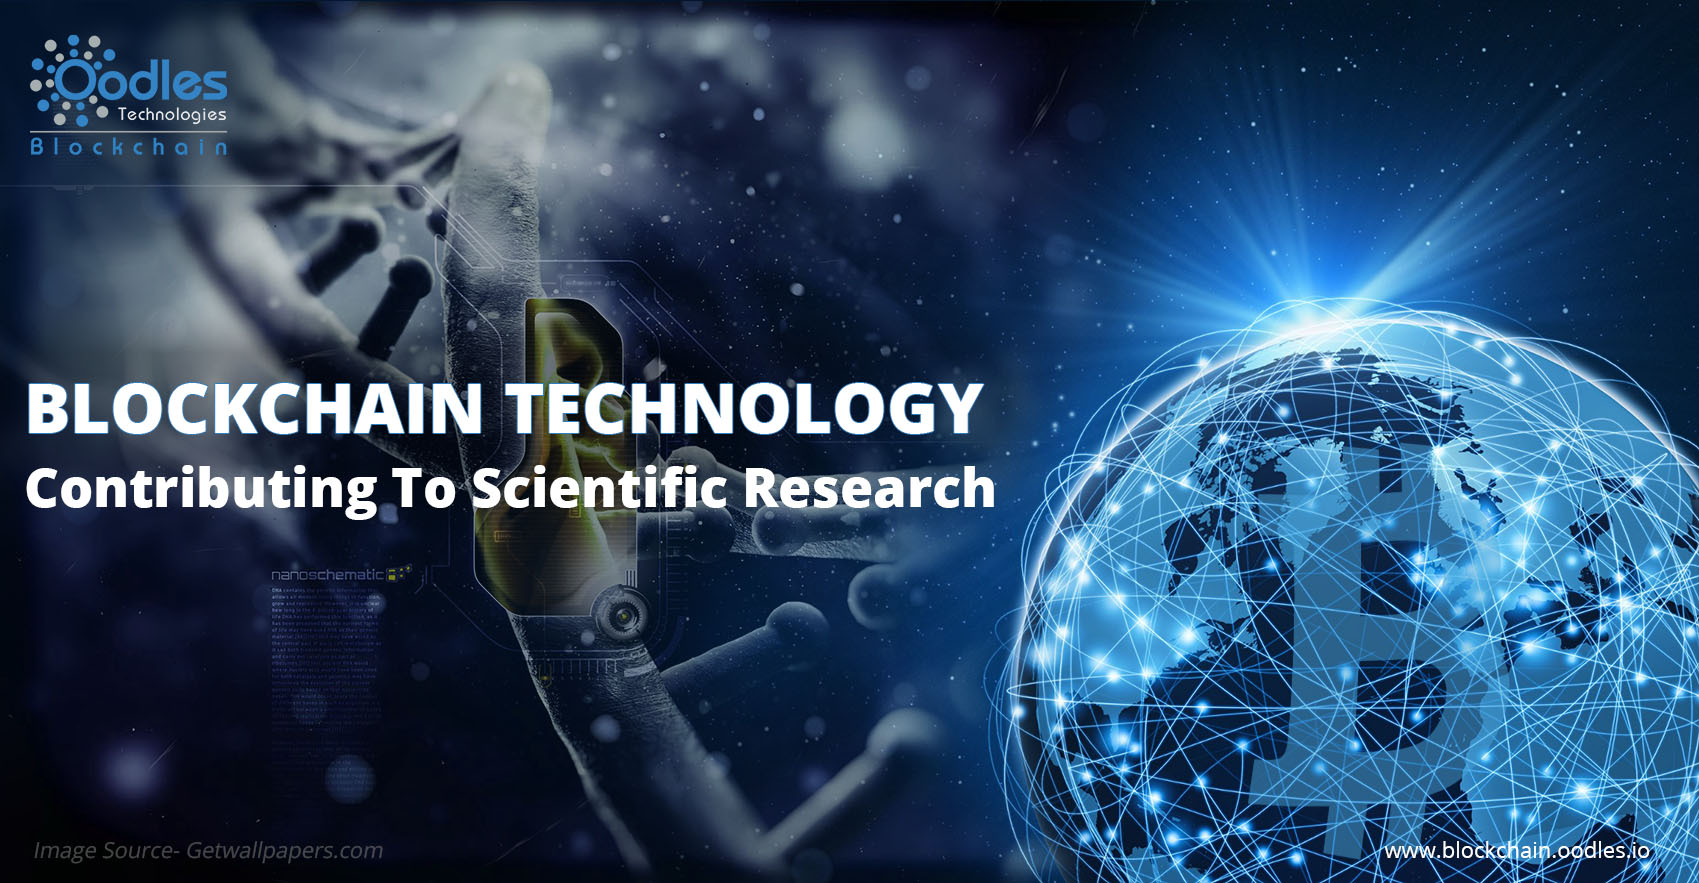 Blockchain Technology Contributing To Scientific Research